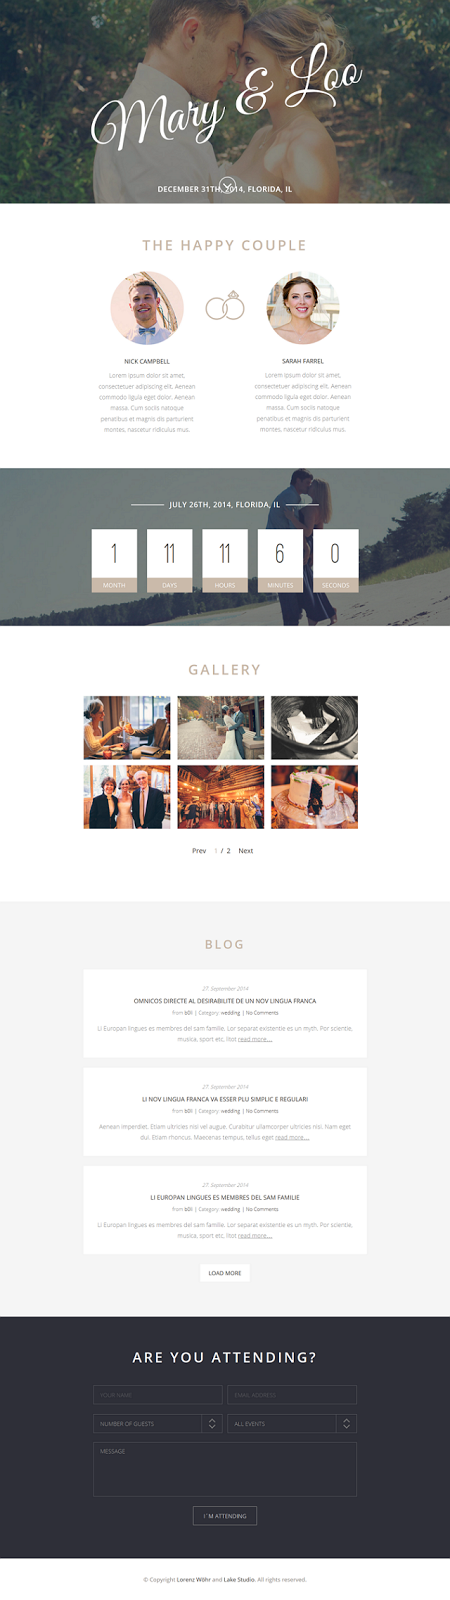 Premium Wordpress Wedding Theme